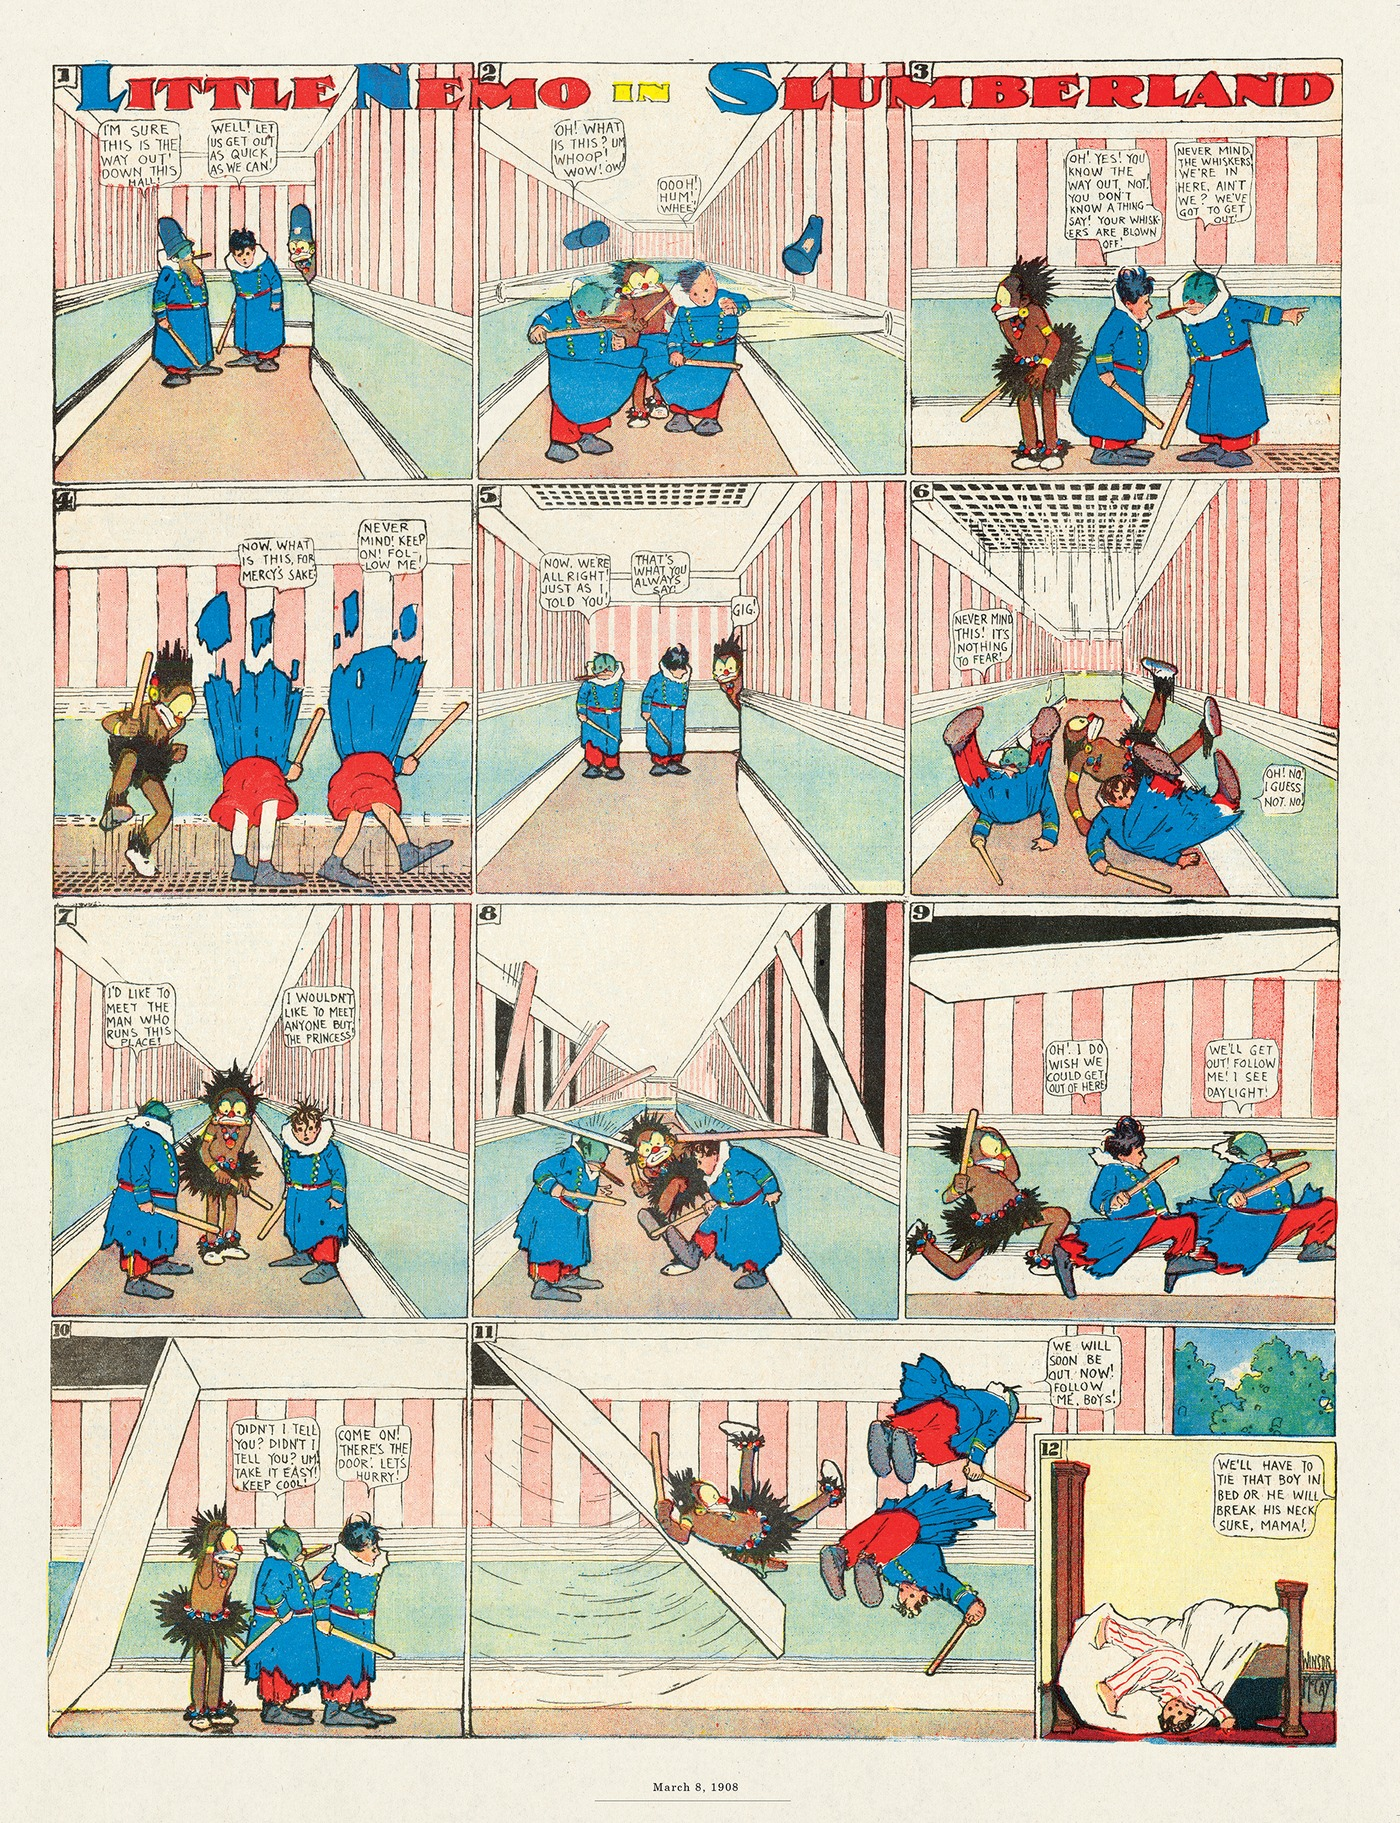 Little Nemo by Winsor McCay on Thu, 24 Sep 2020